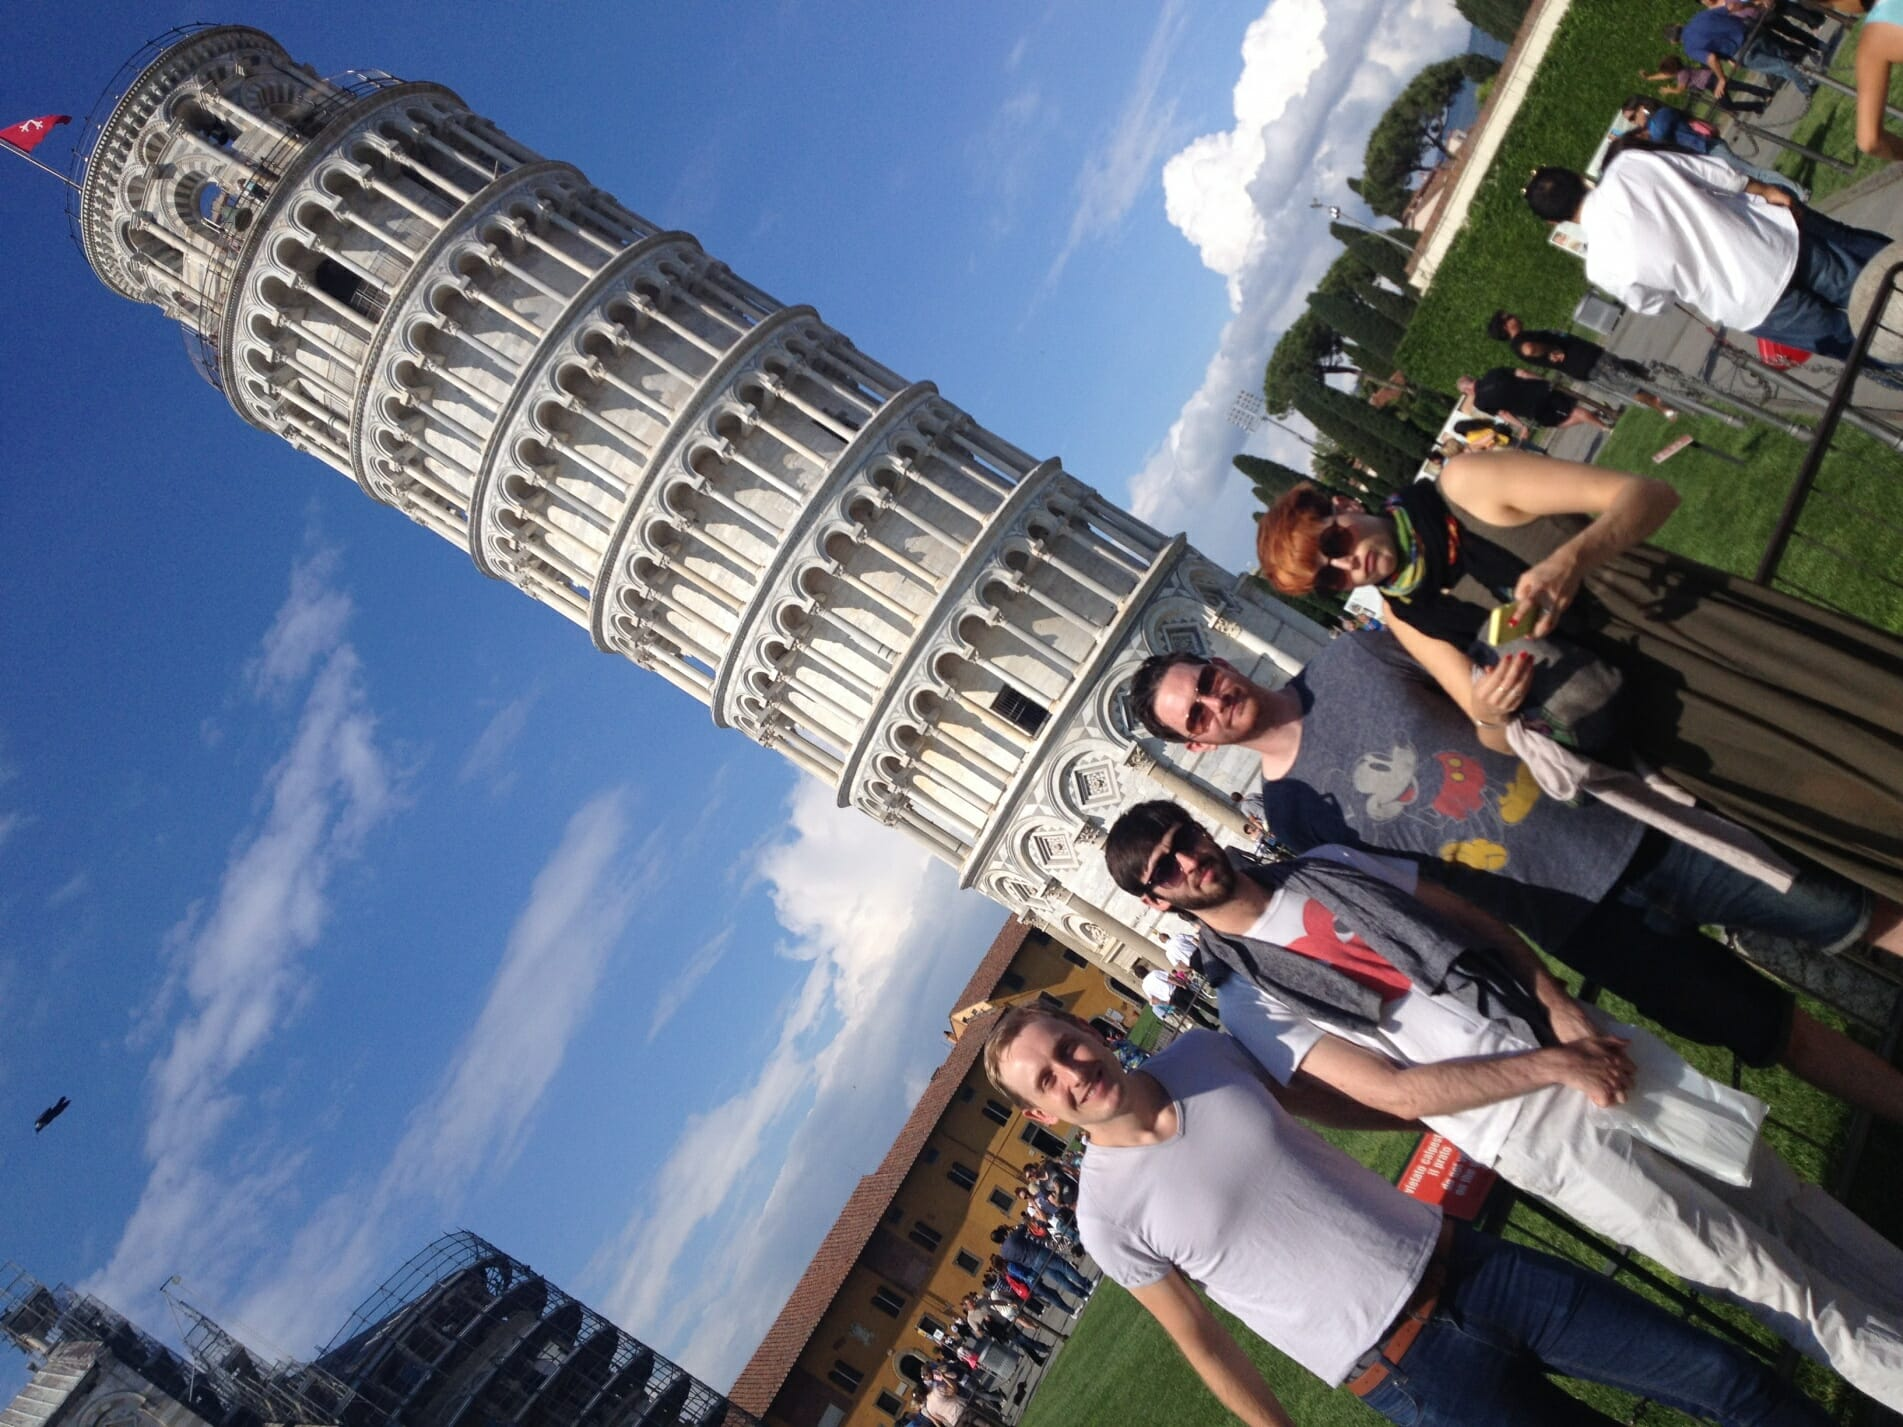 The Zoots in Pisa, 1960s band, 1960s tribute show, 60s tribute band, sixties tribute band, the zoots band, party band for 60s music, party band in South West